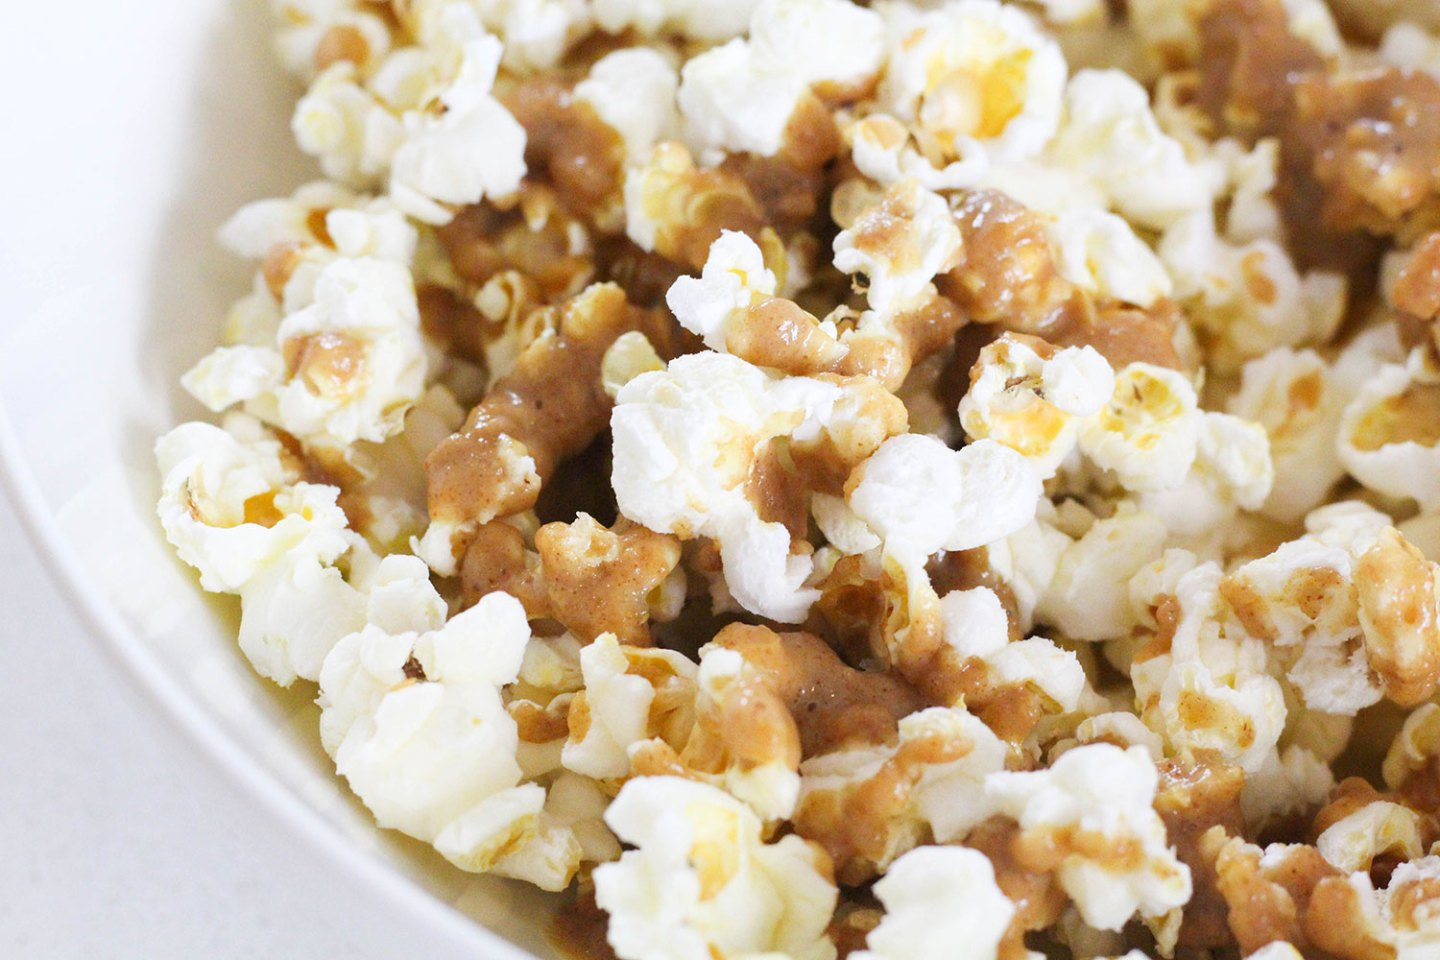 Healthy Popcorn with Peanut Butter Drizzle (dairy-free, sugar-free)